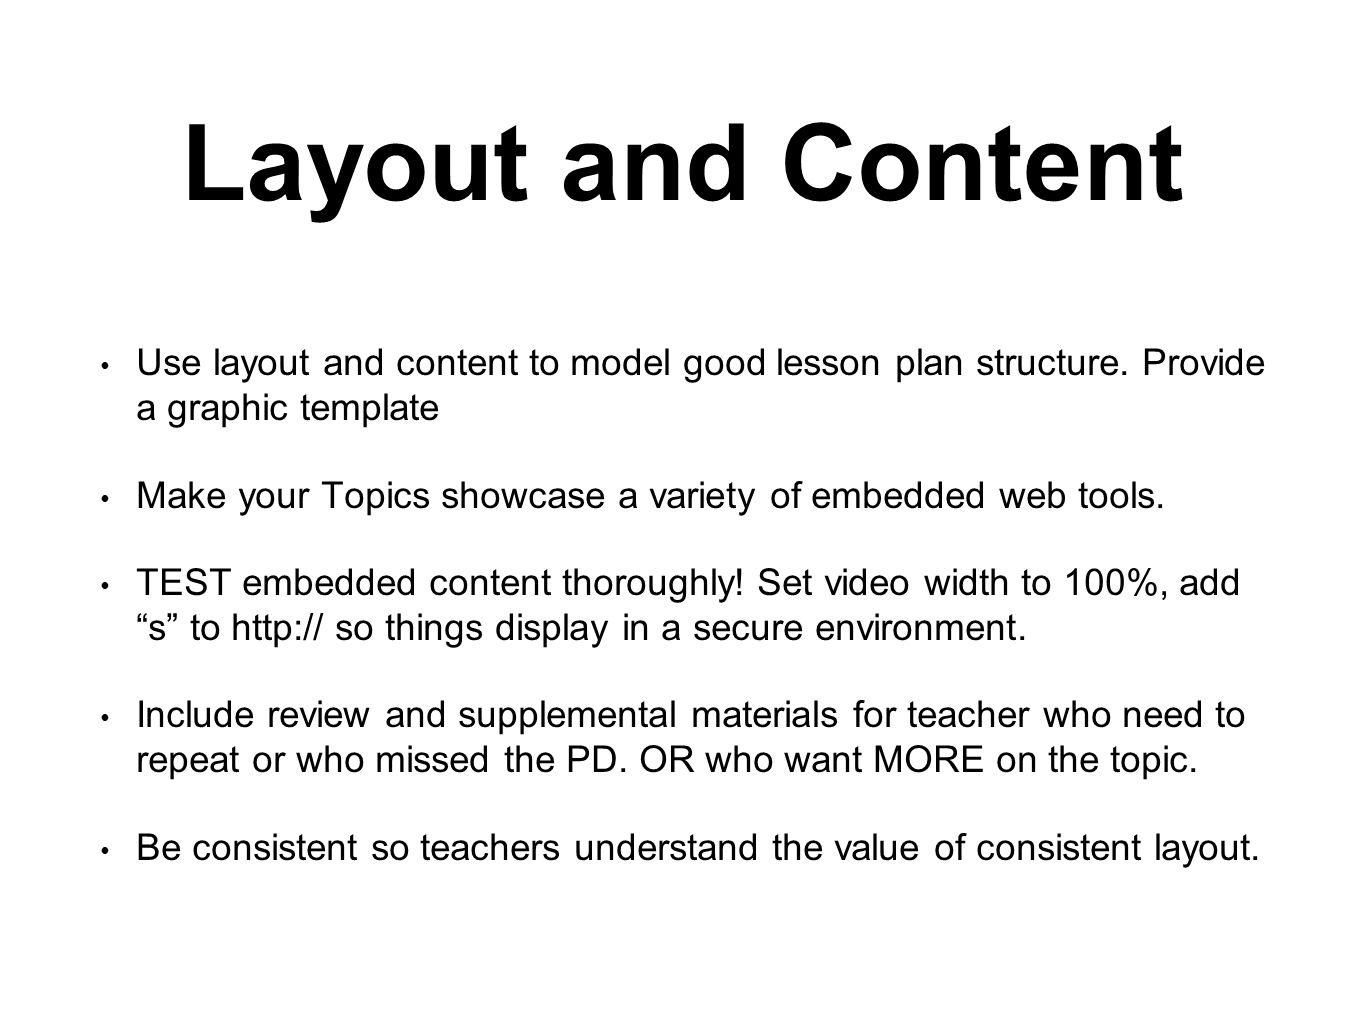 Layout and Content Use layout and content to model good lesson plan structure. Provide a graphic template Make your Topics showcase a variety of embed